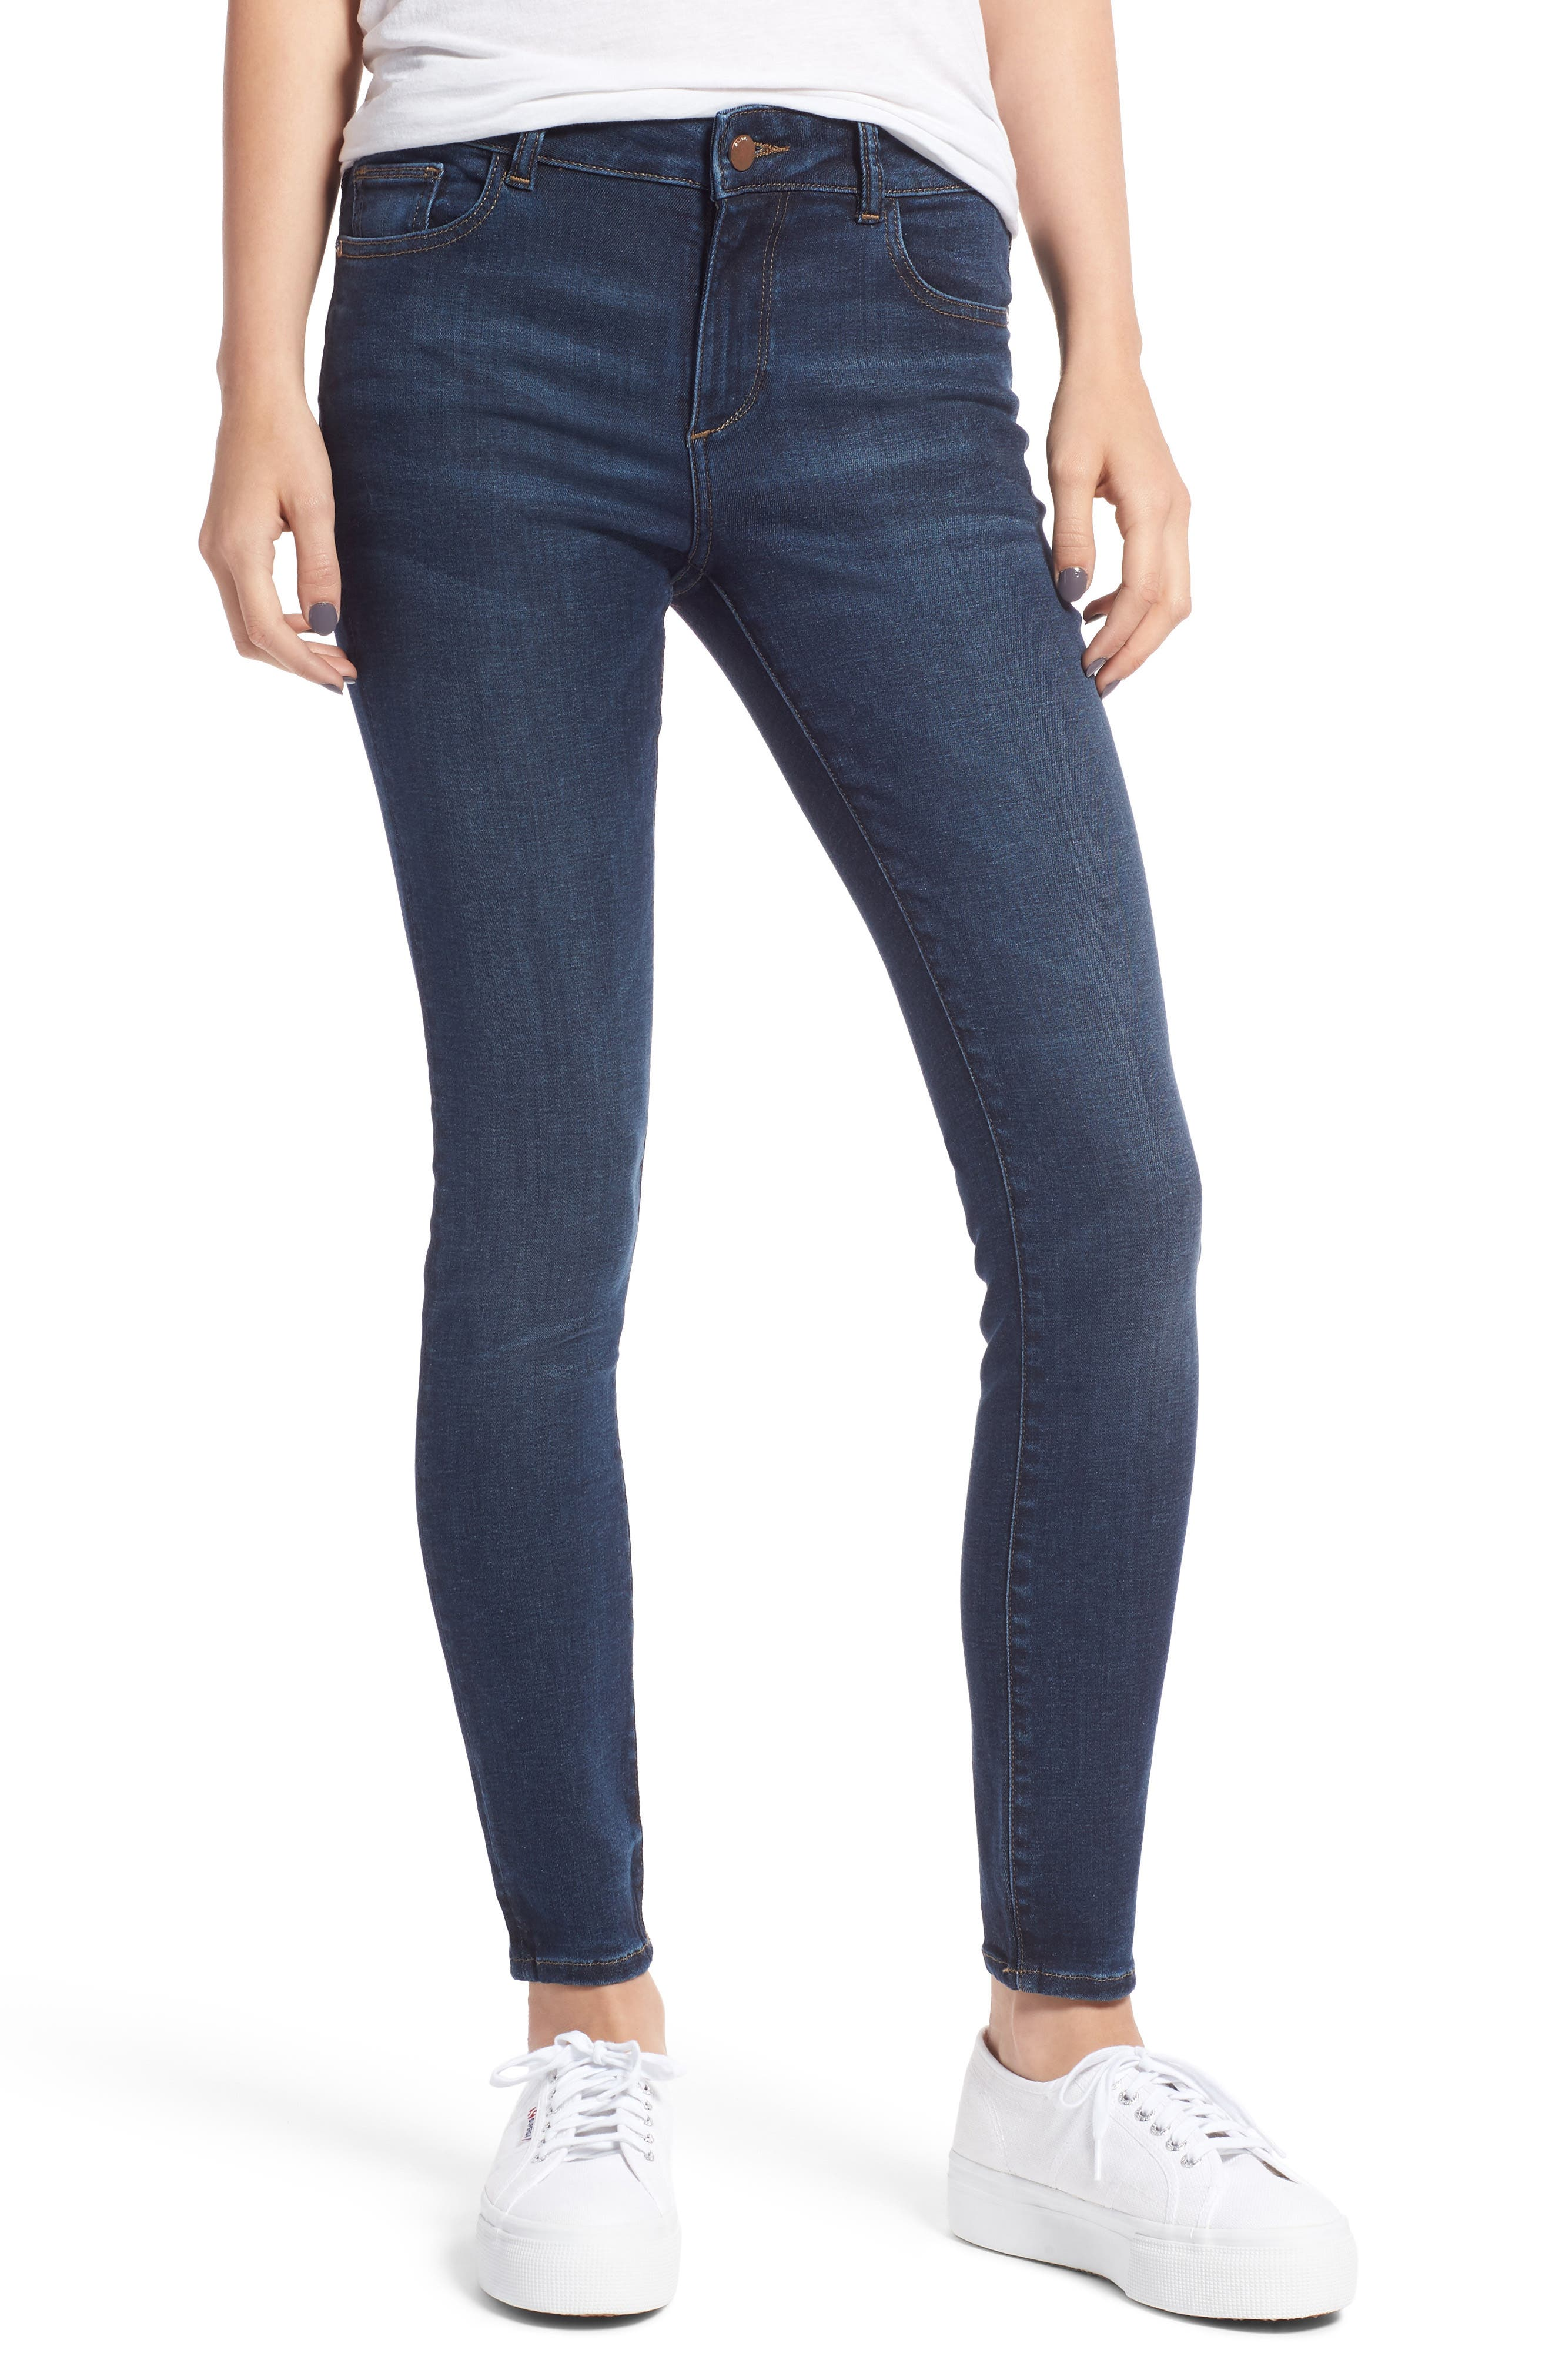 Florence Instasculpt Ankle Skinny Jeans,                             Main thumbnail 1, color,                             425